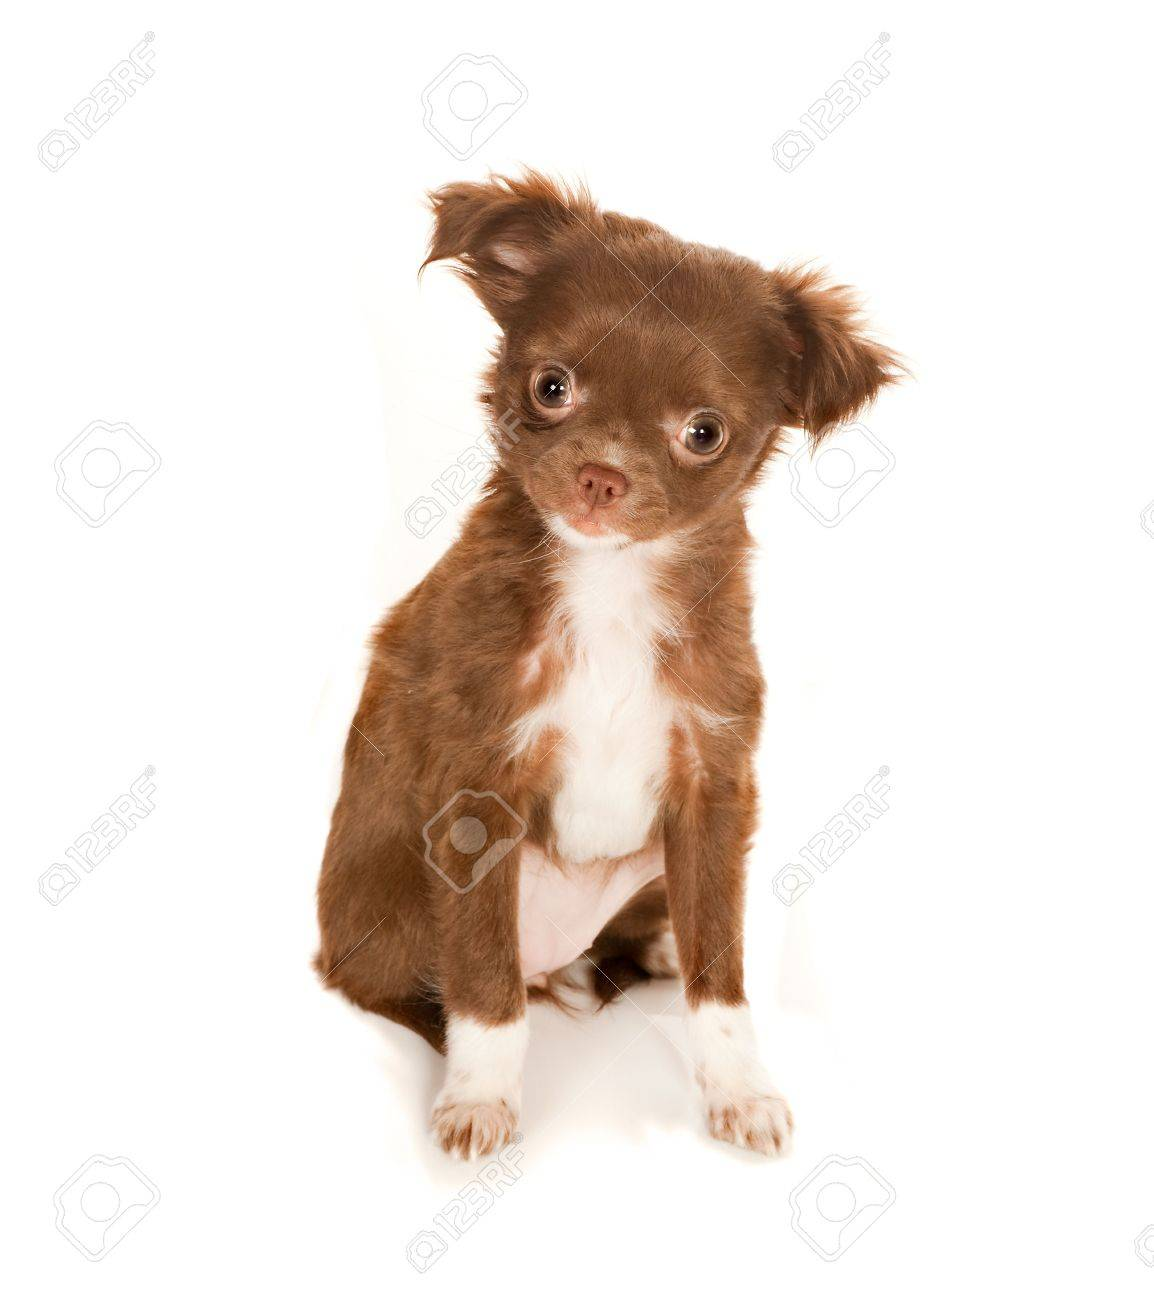 Brown Longhaired Chihuahua Puppy On A White Background